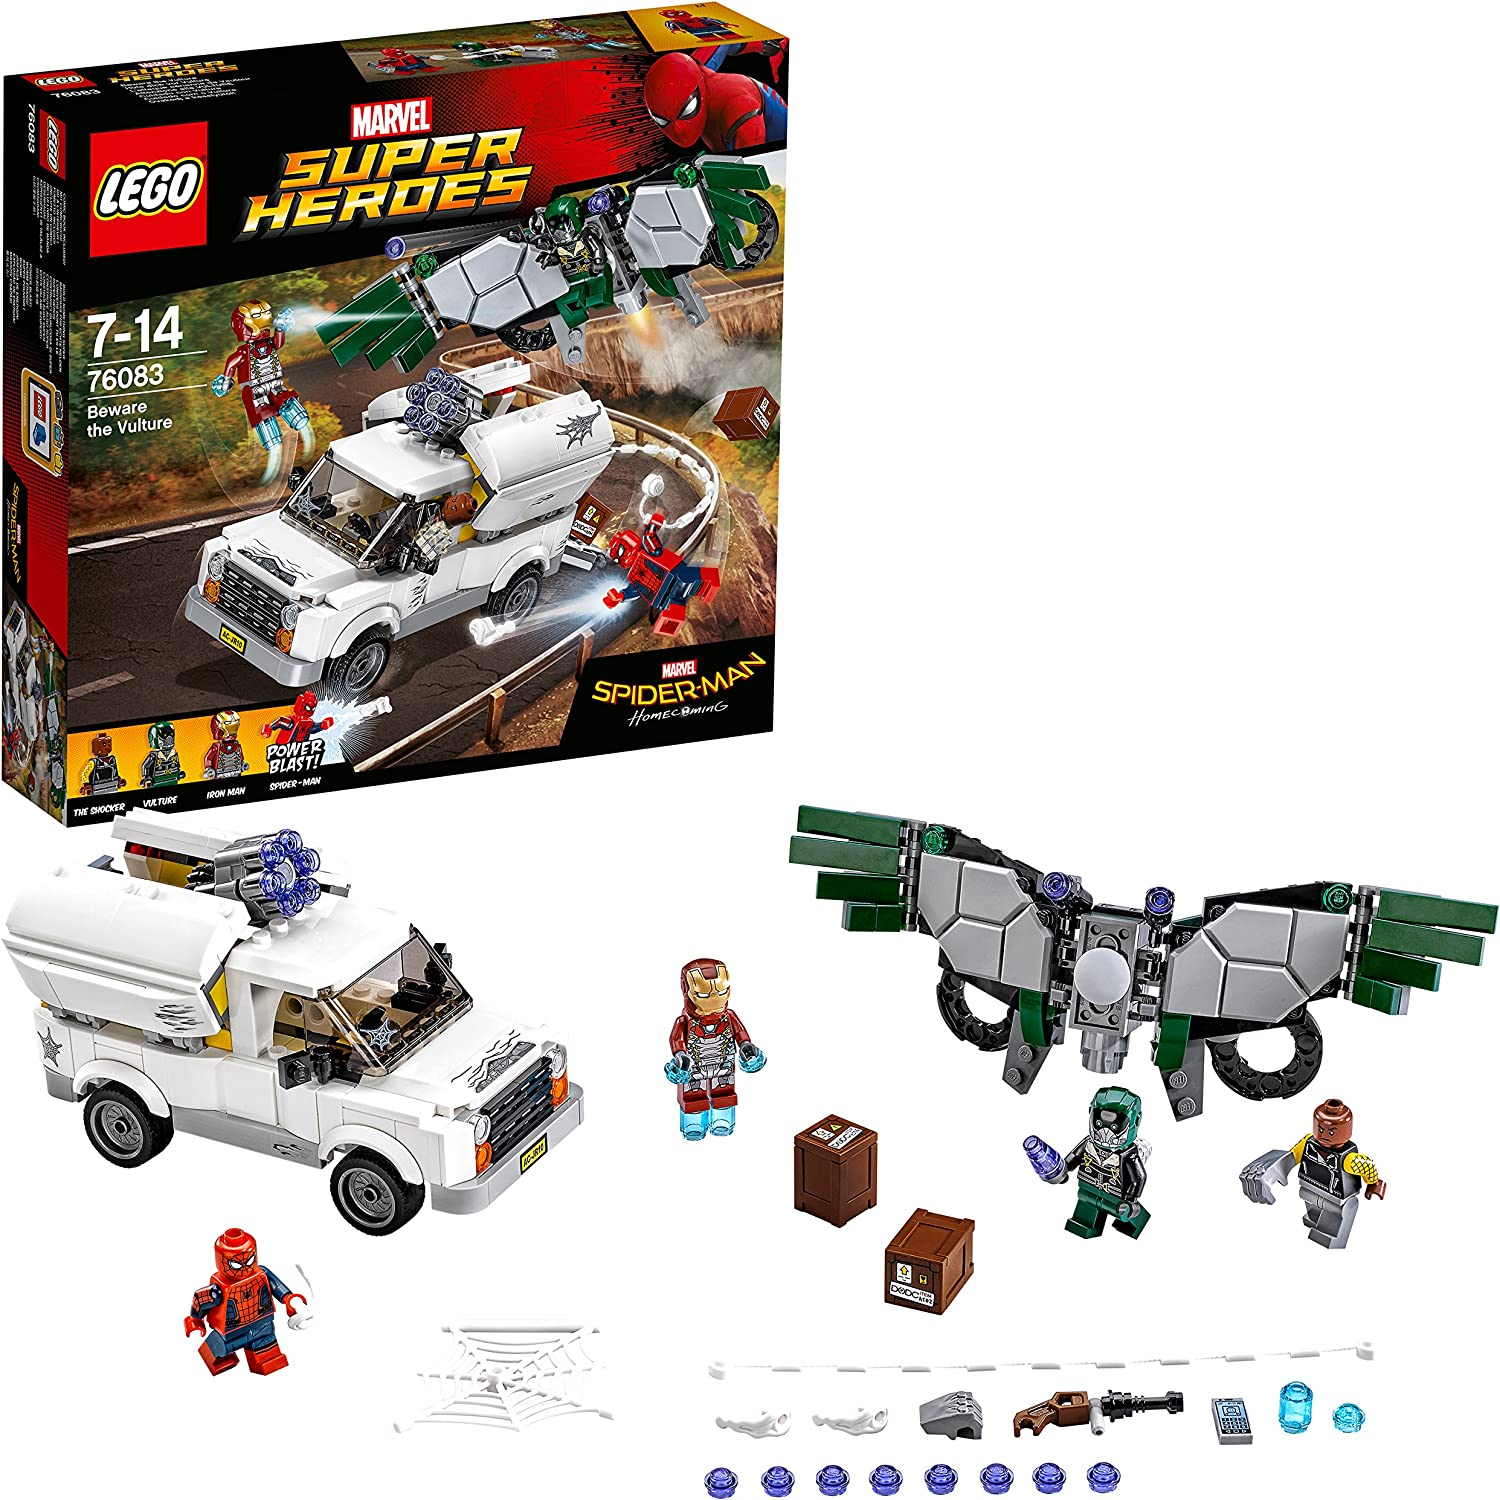 LEGO Super Heroes - Beware The Vulture